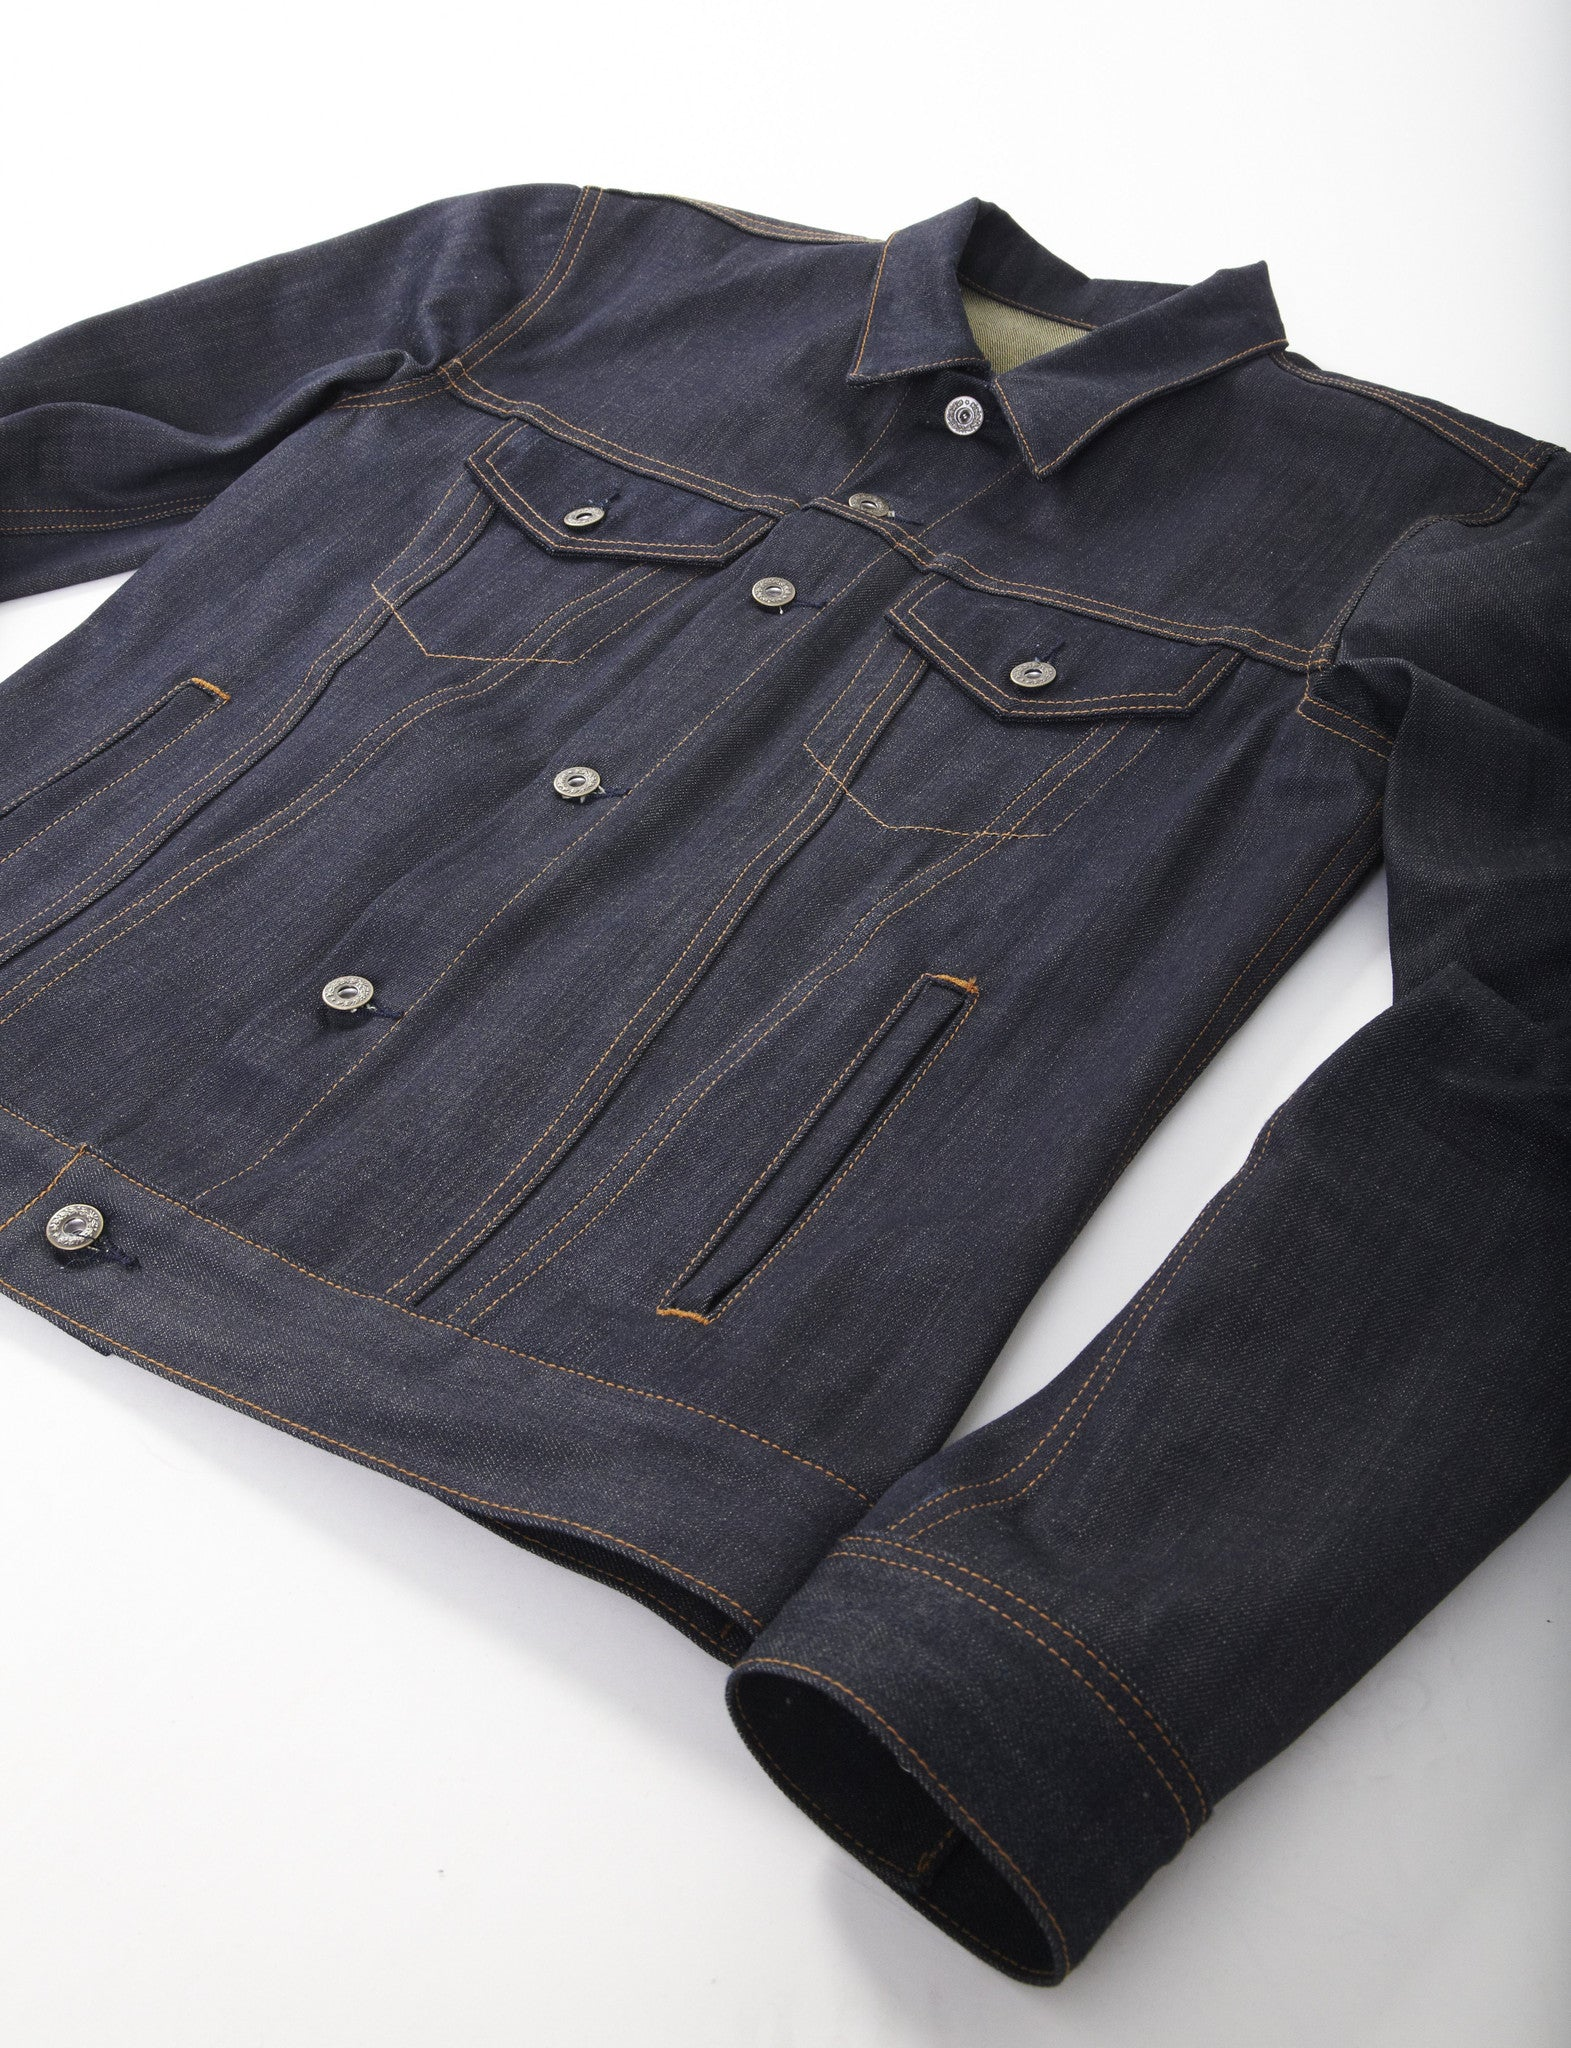 The Ironside 15oz 'American Heritage' Cone Mills Selvage Denim Jacket